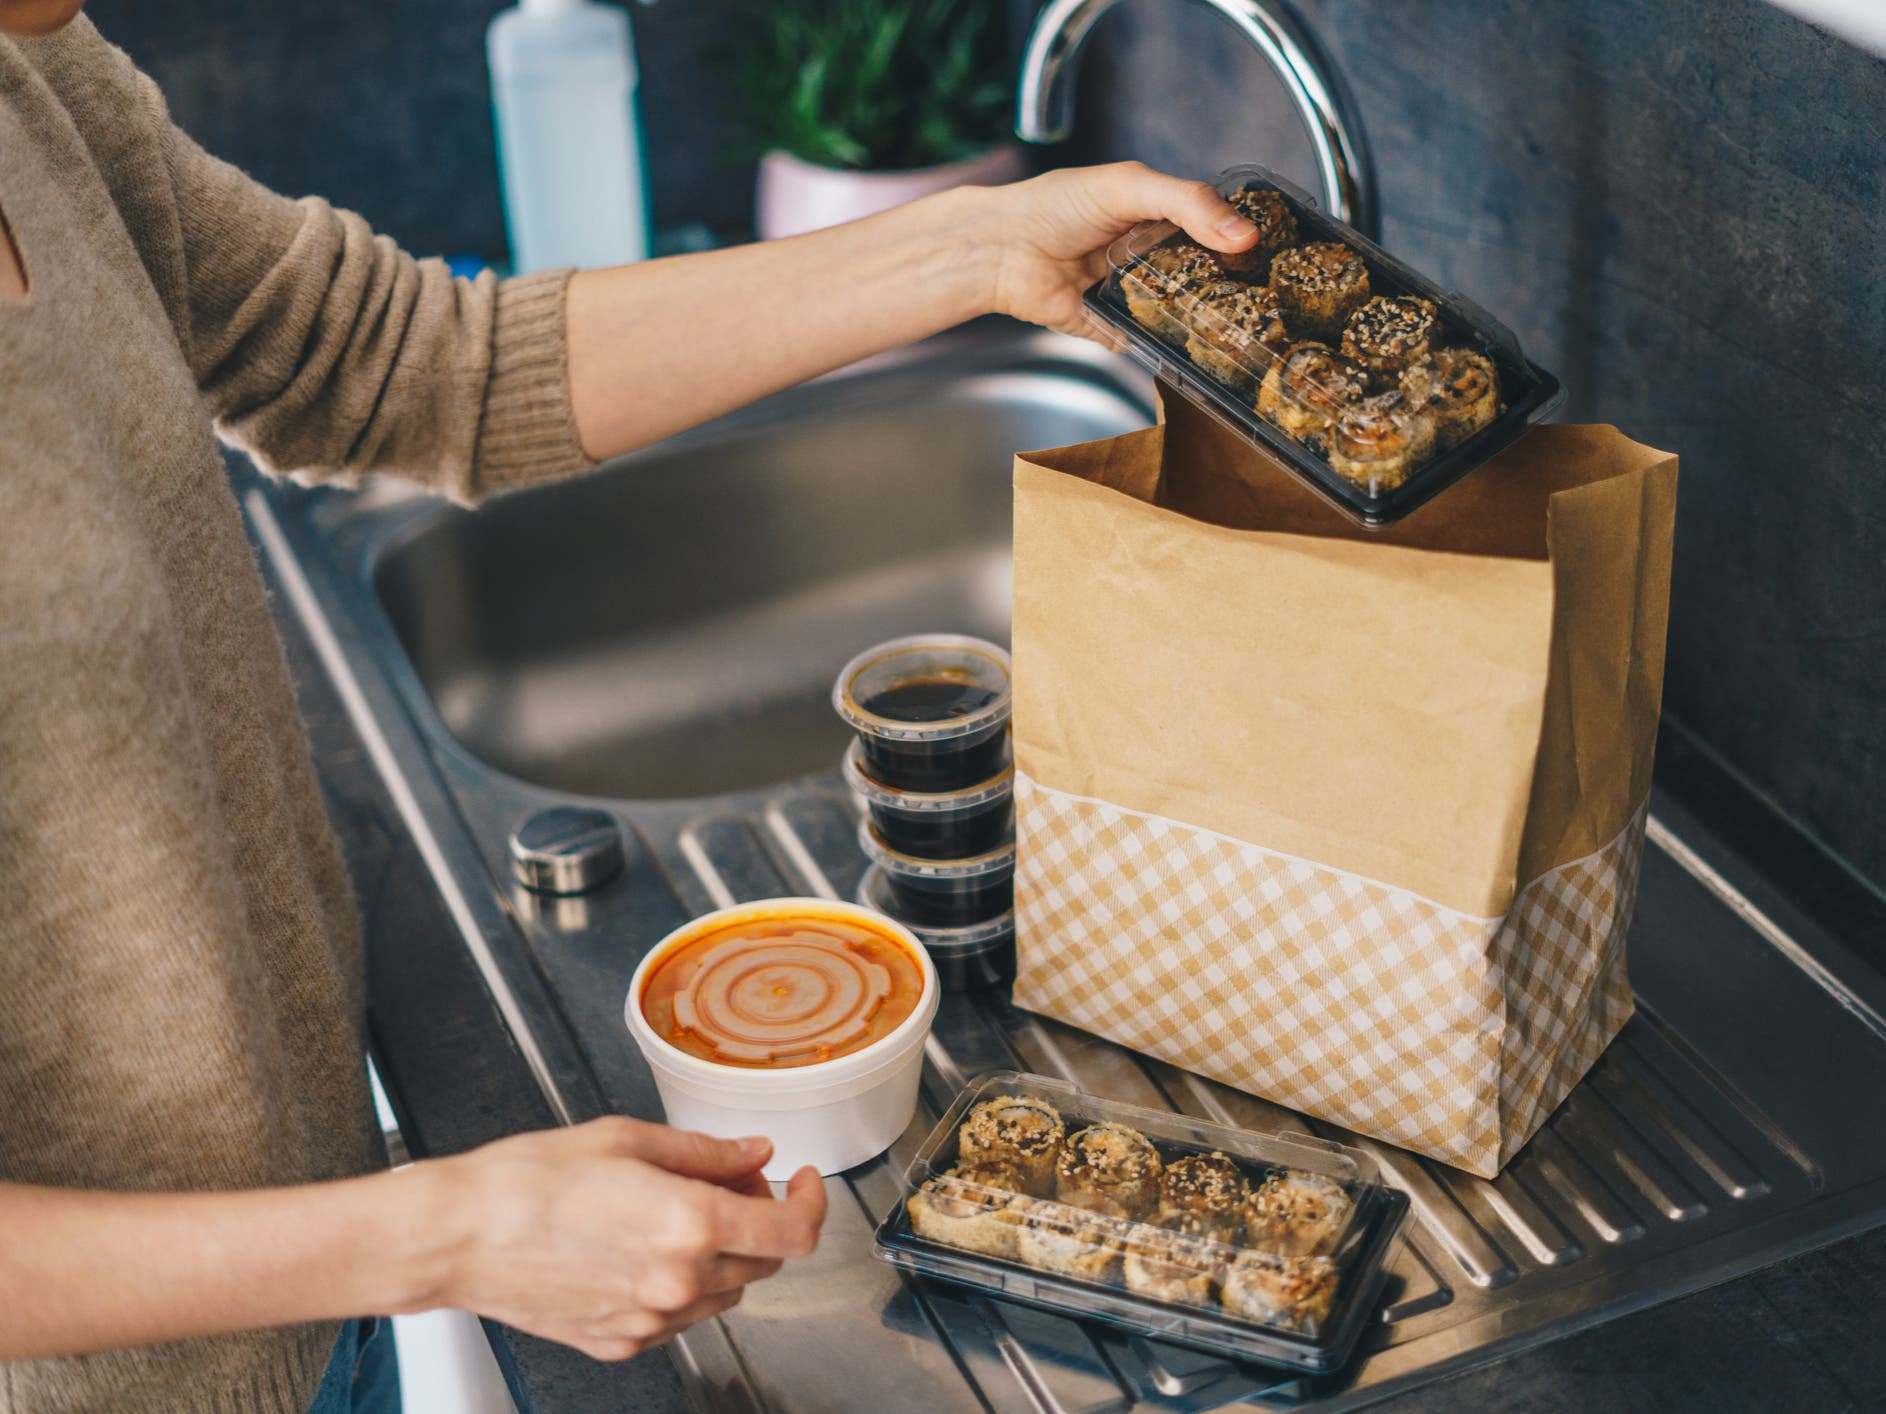 How to make your next takeaway dinner more sustainable